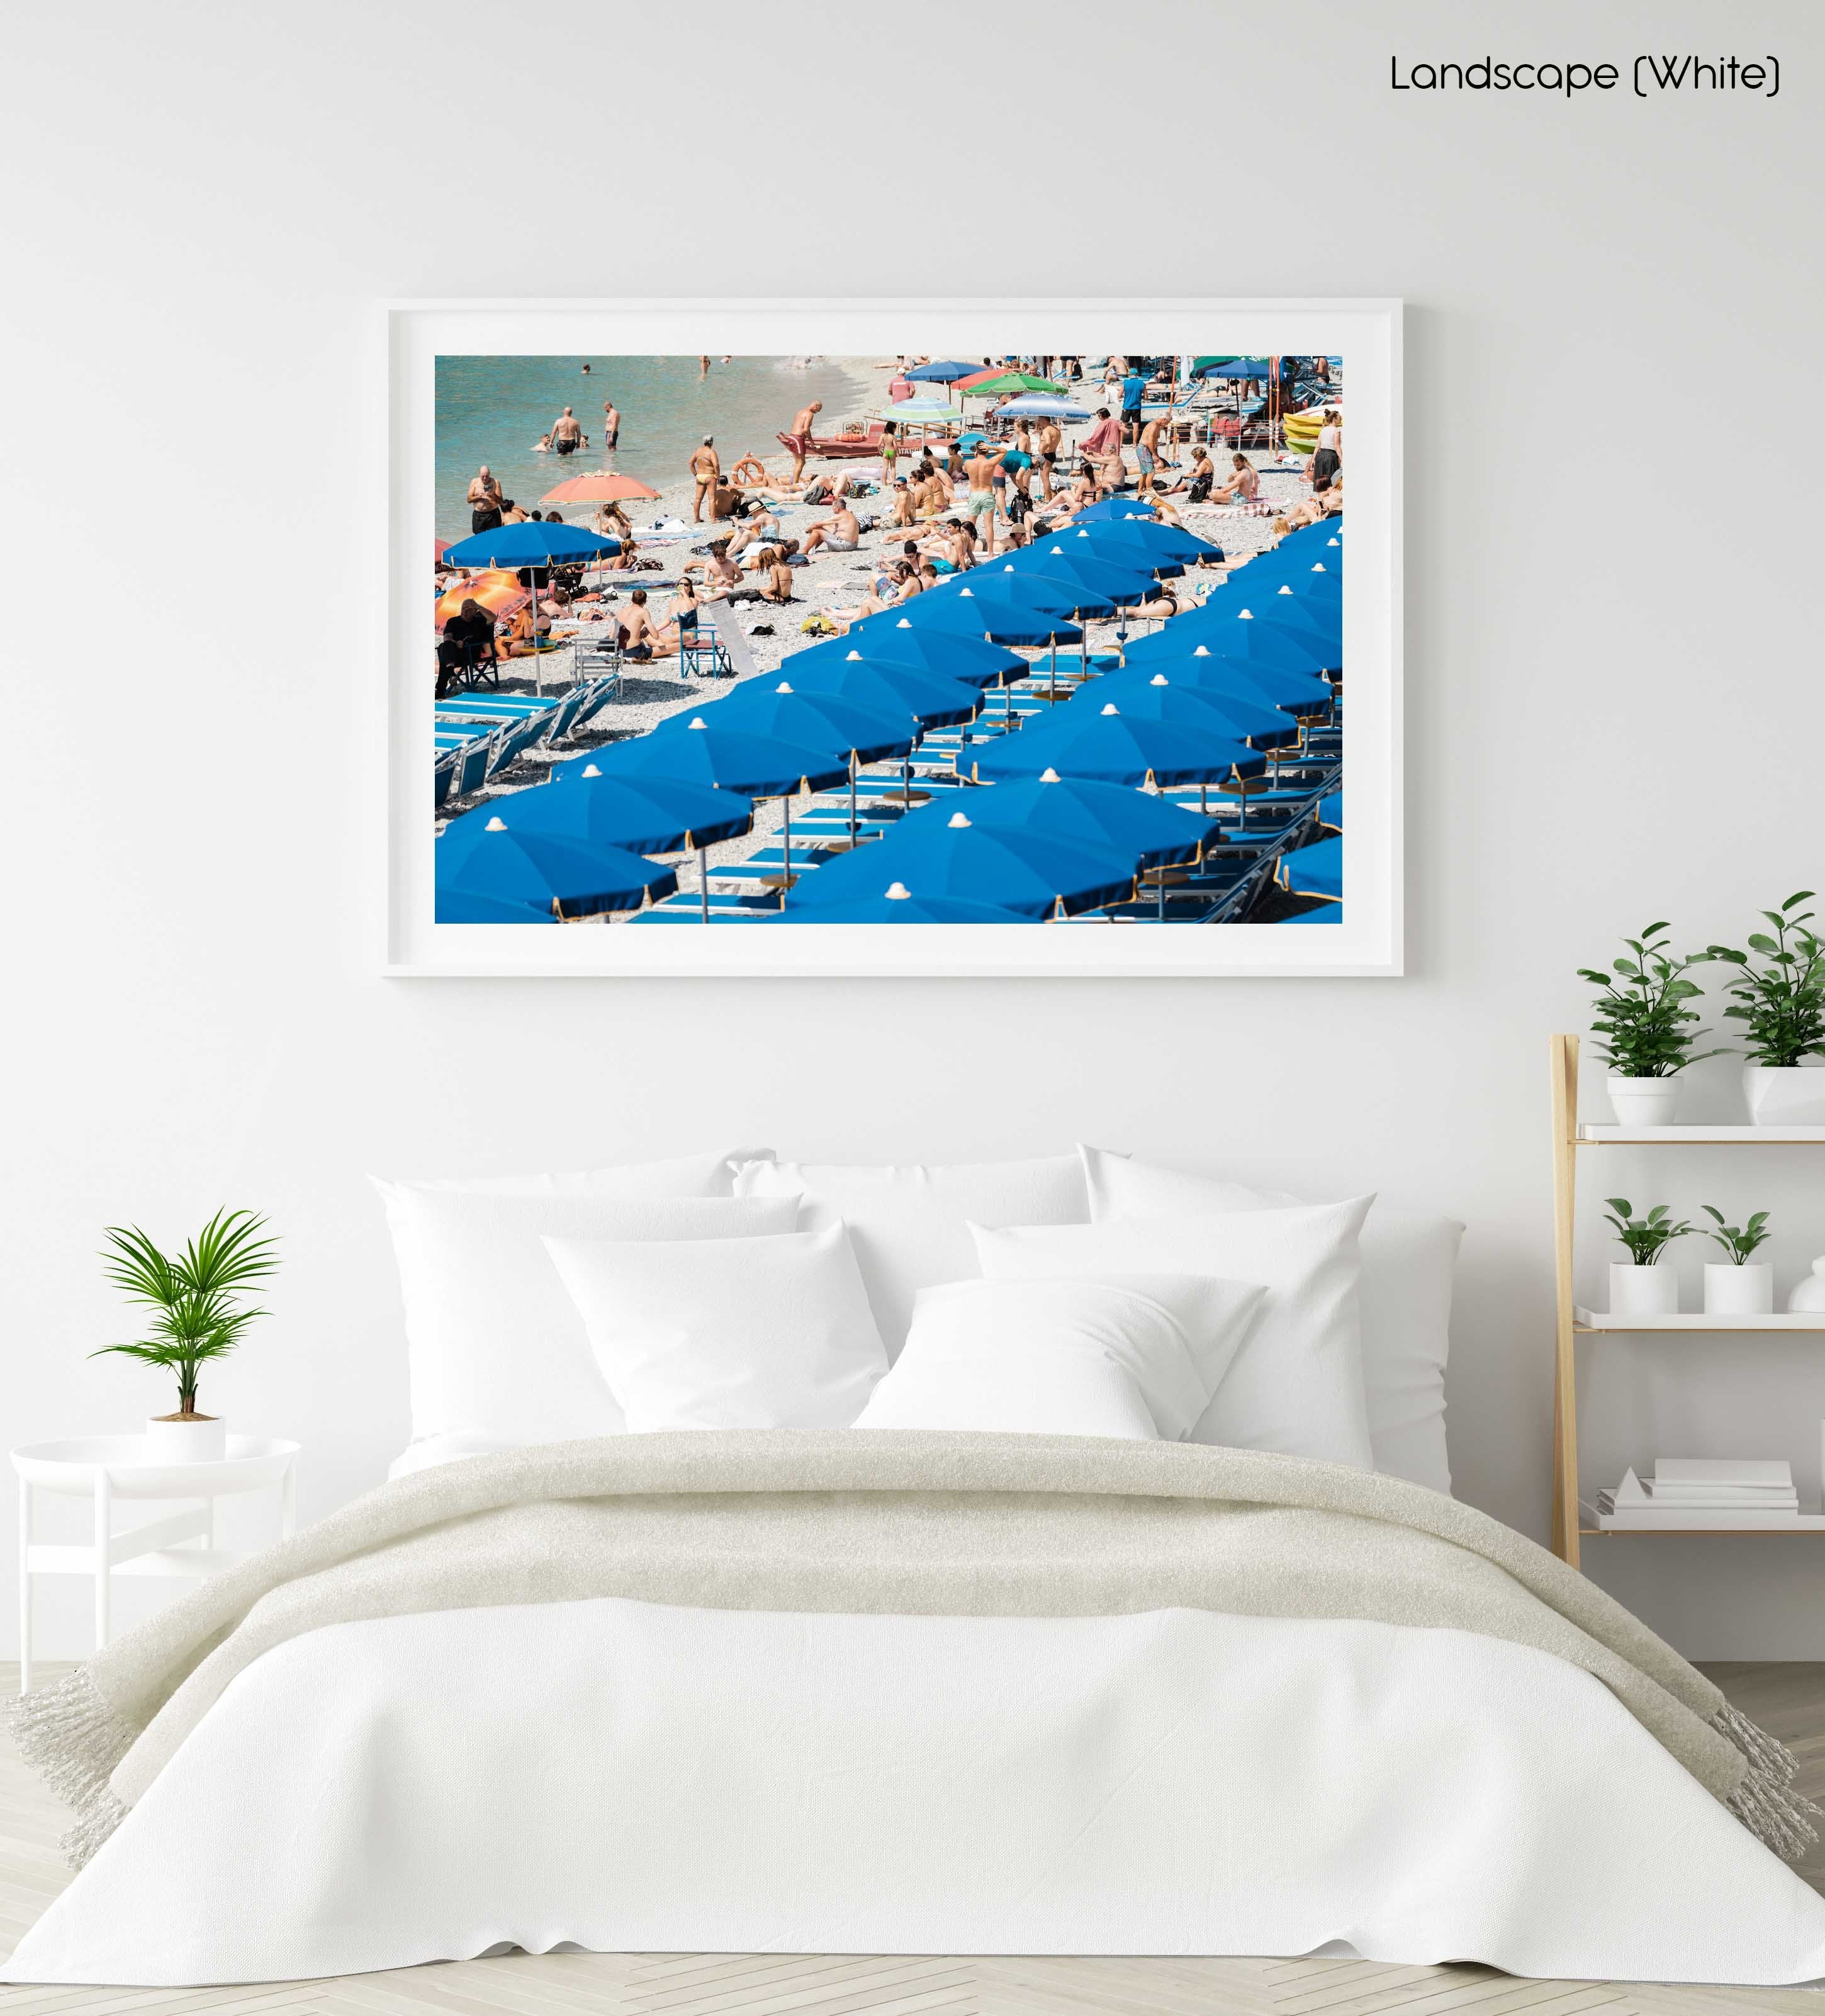 People lying on the sand next to blue umbrellas in Cinque Terre in a white fine art frame